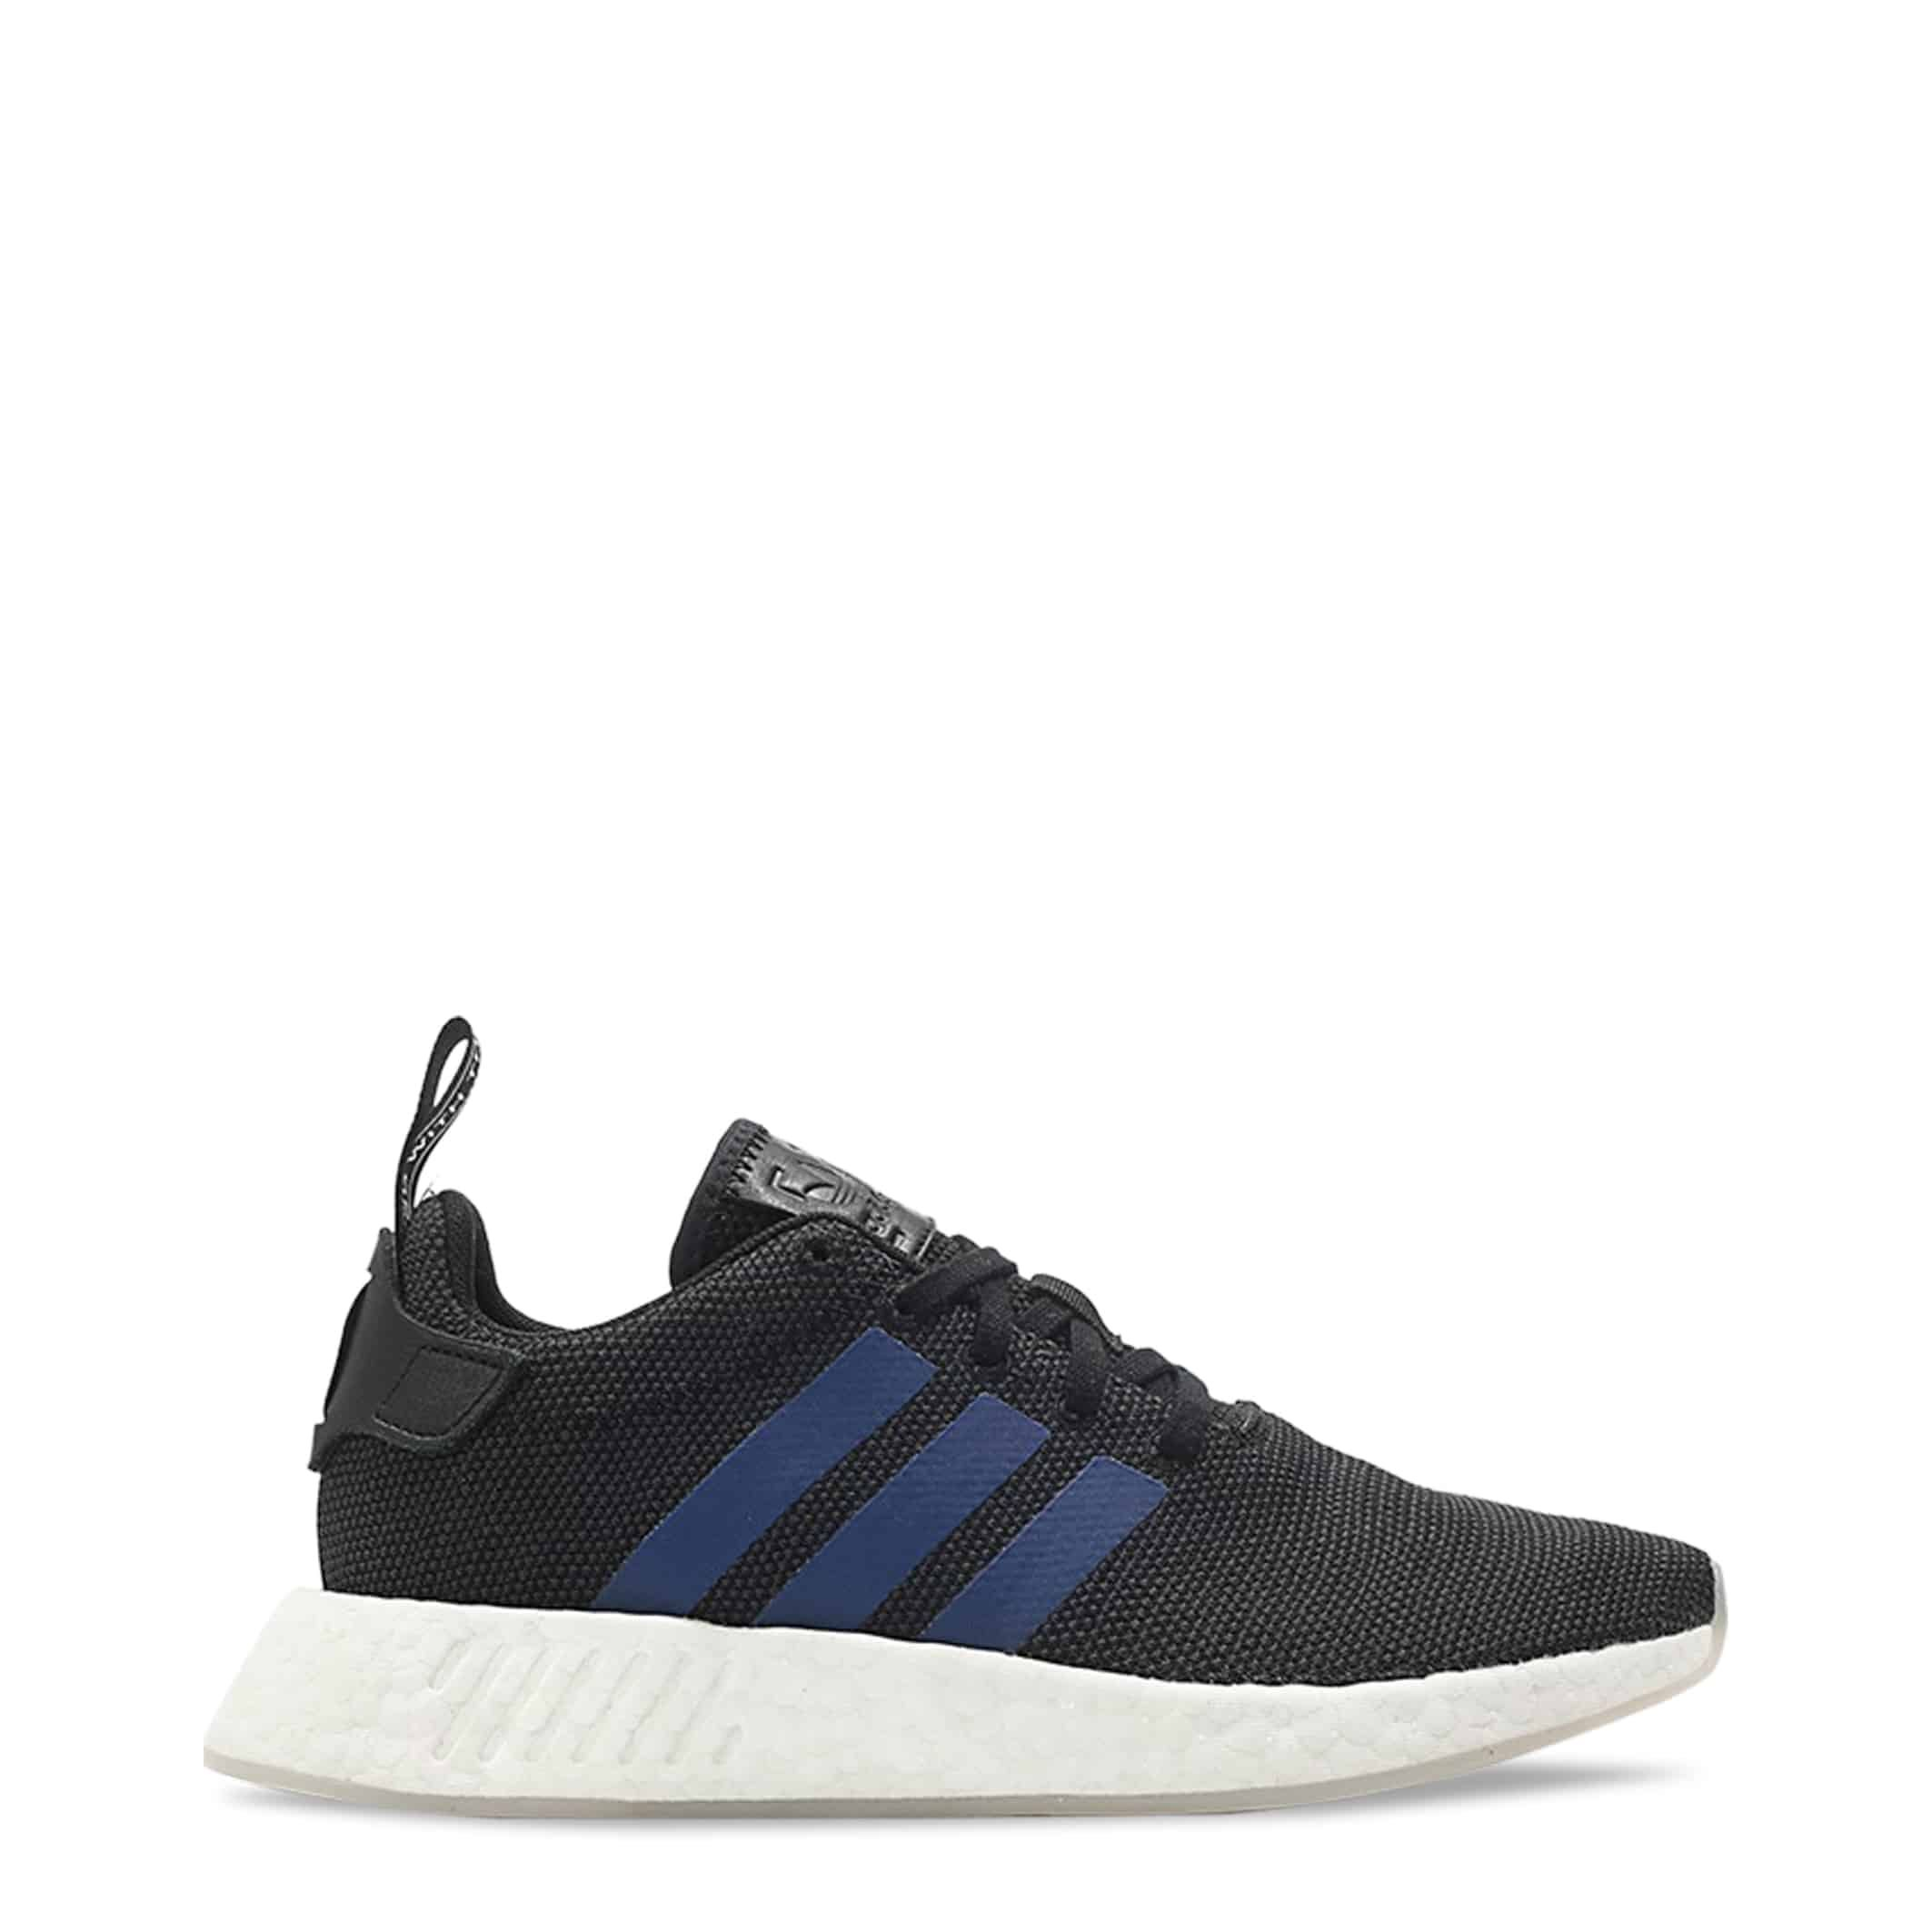 Sneakers Adidas – NMD-R2-W